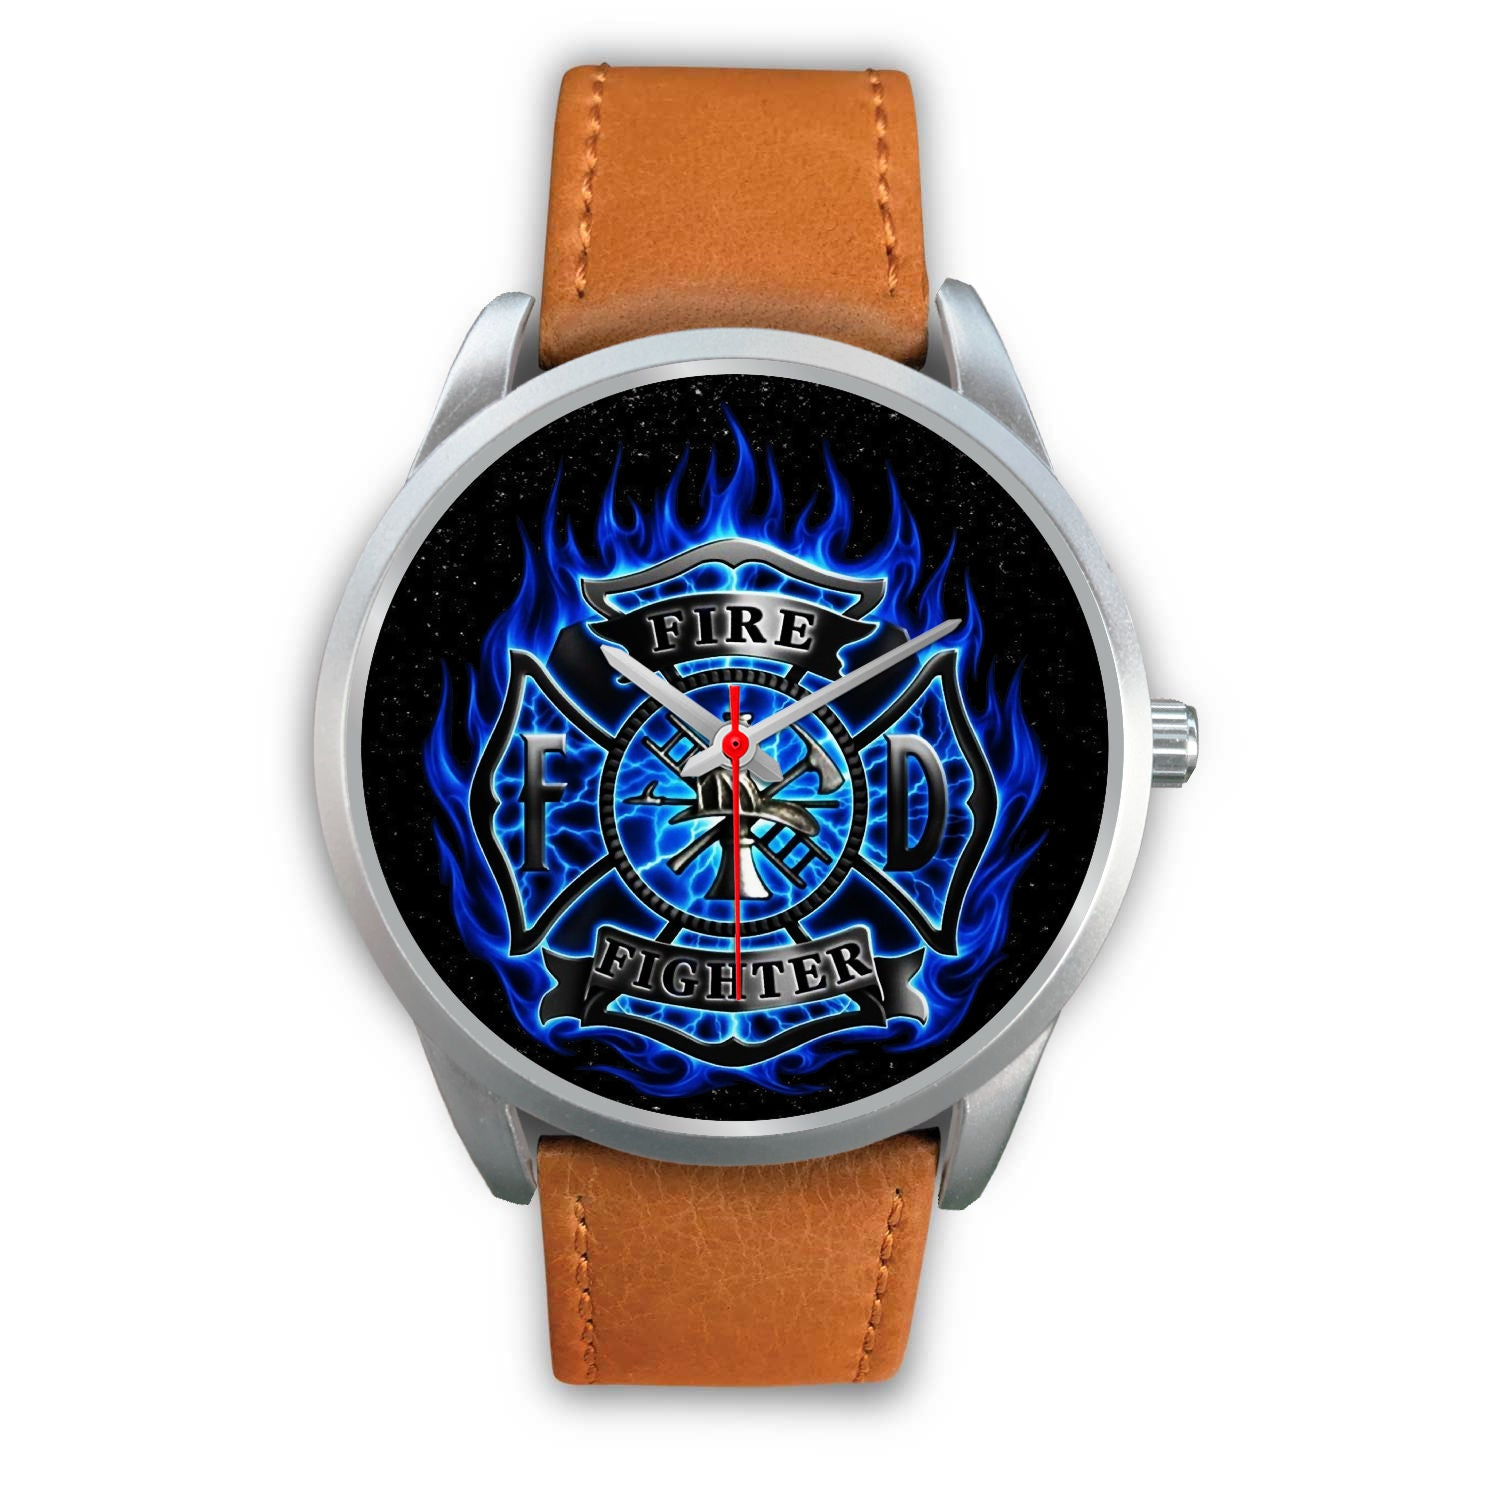 VIRA REAL LEATHER WATCH FOR FIREFIGHTER LOVERS